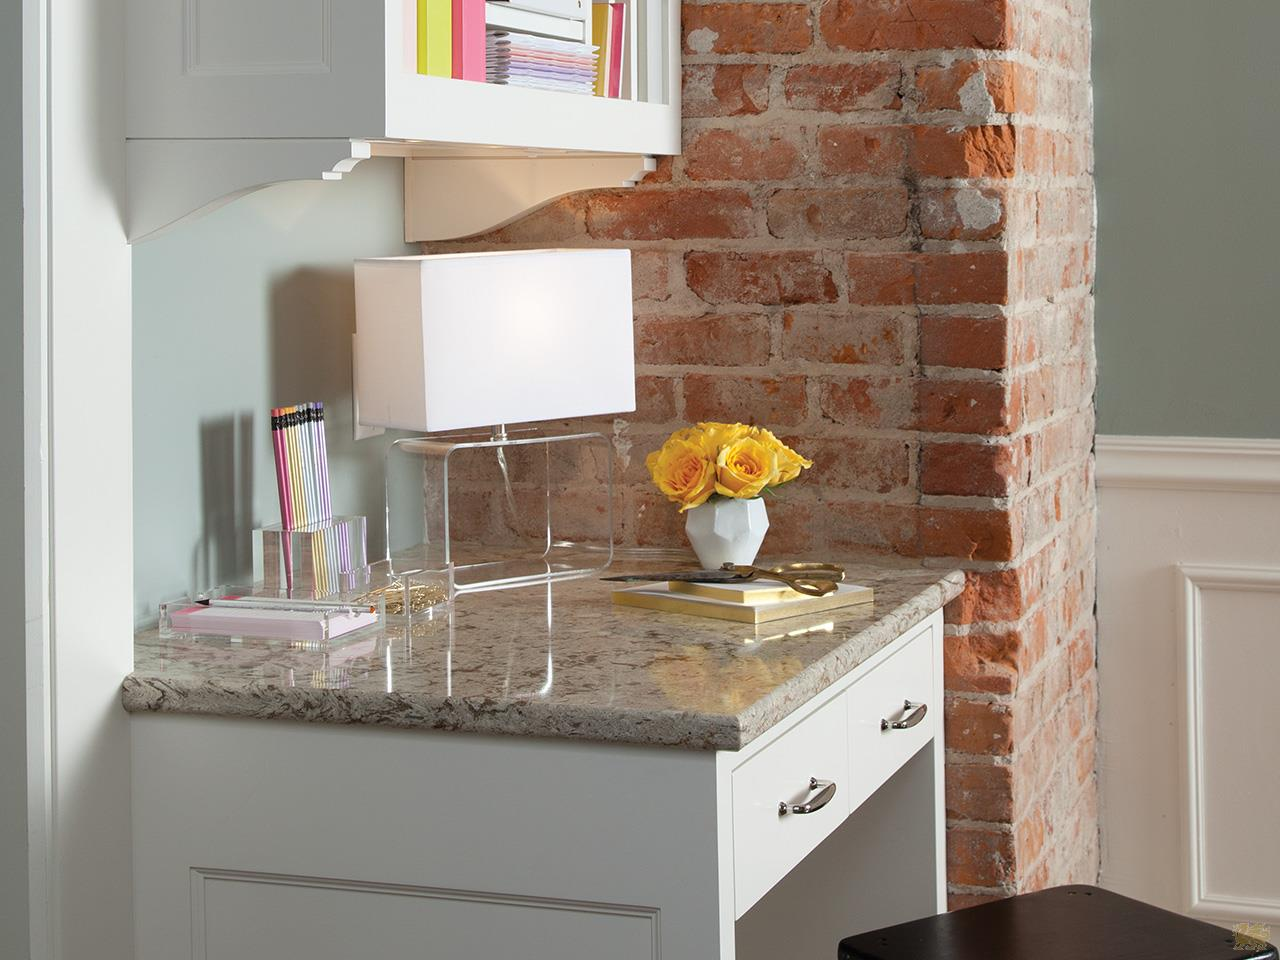 Winston Floors Countertops Coupons Near Me In Plano 8coupons